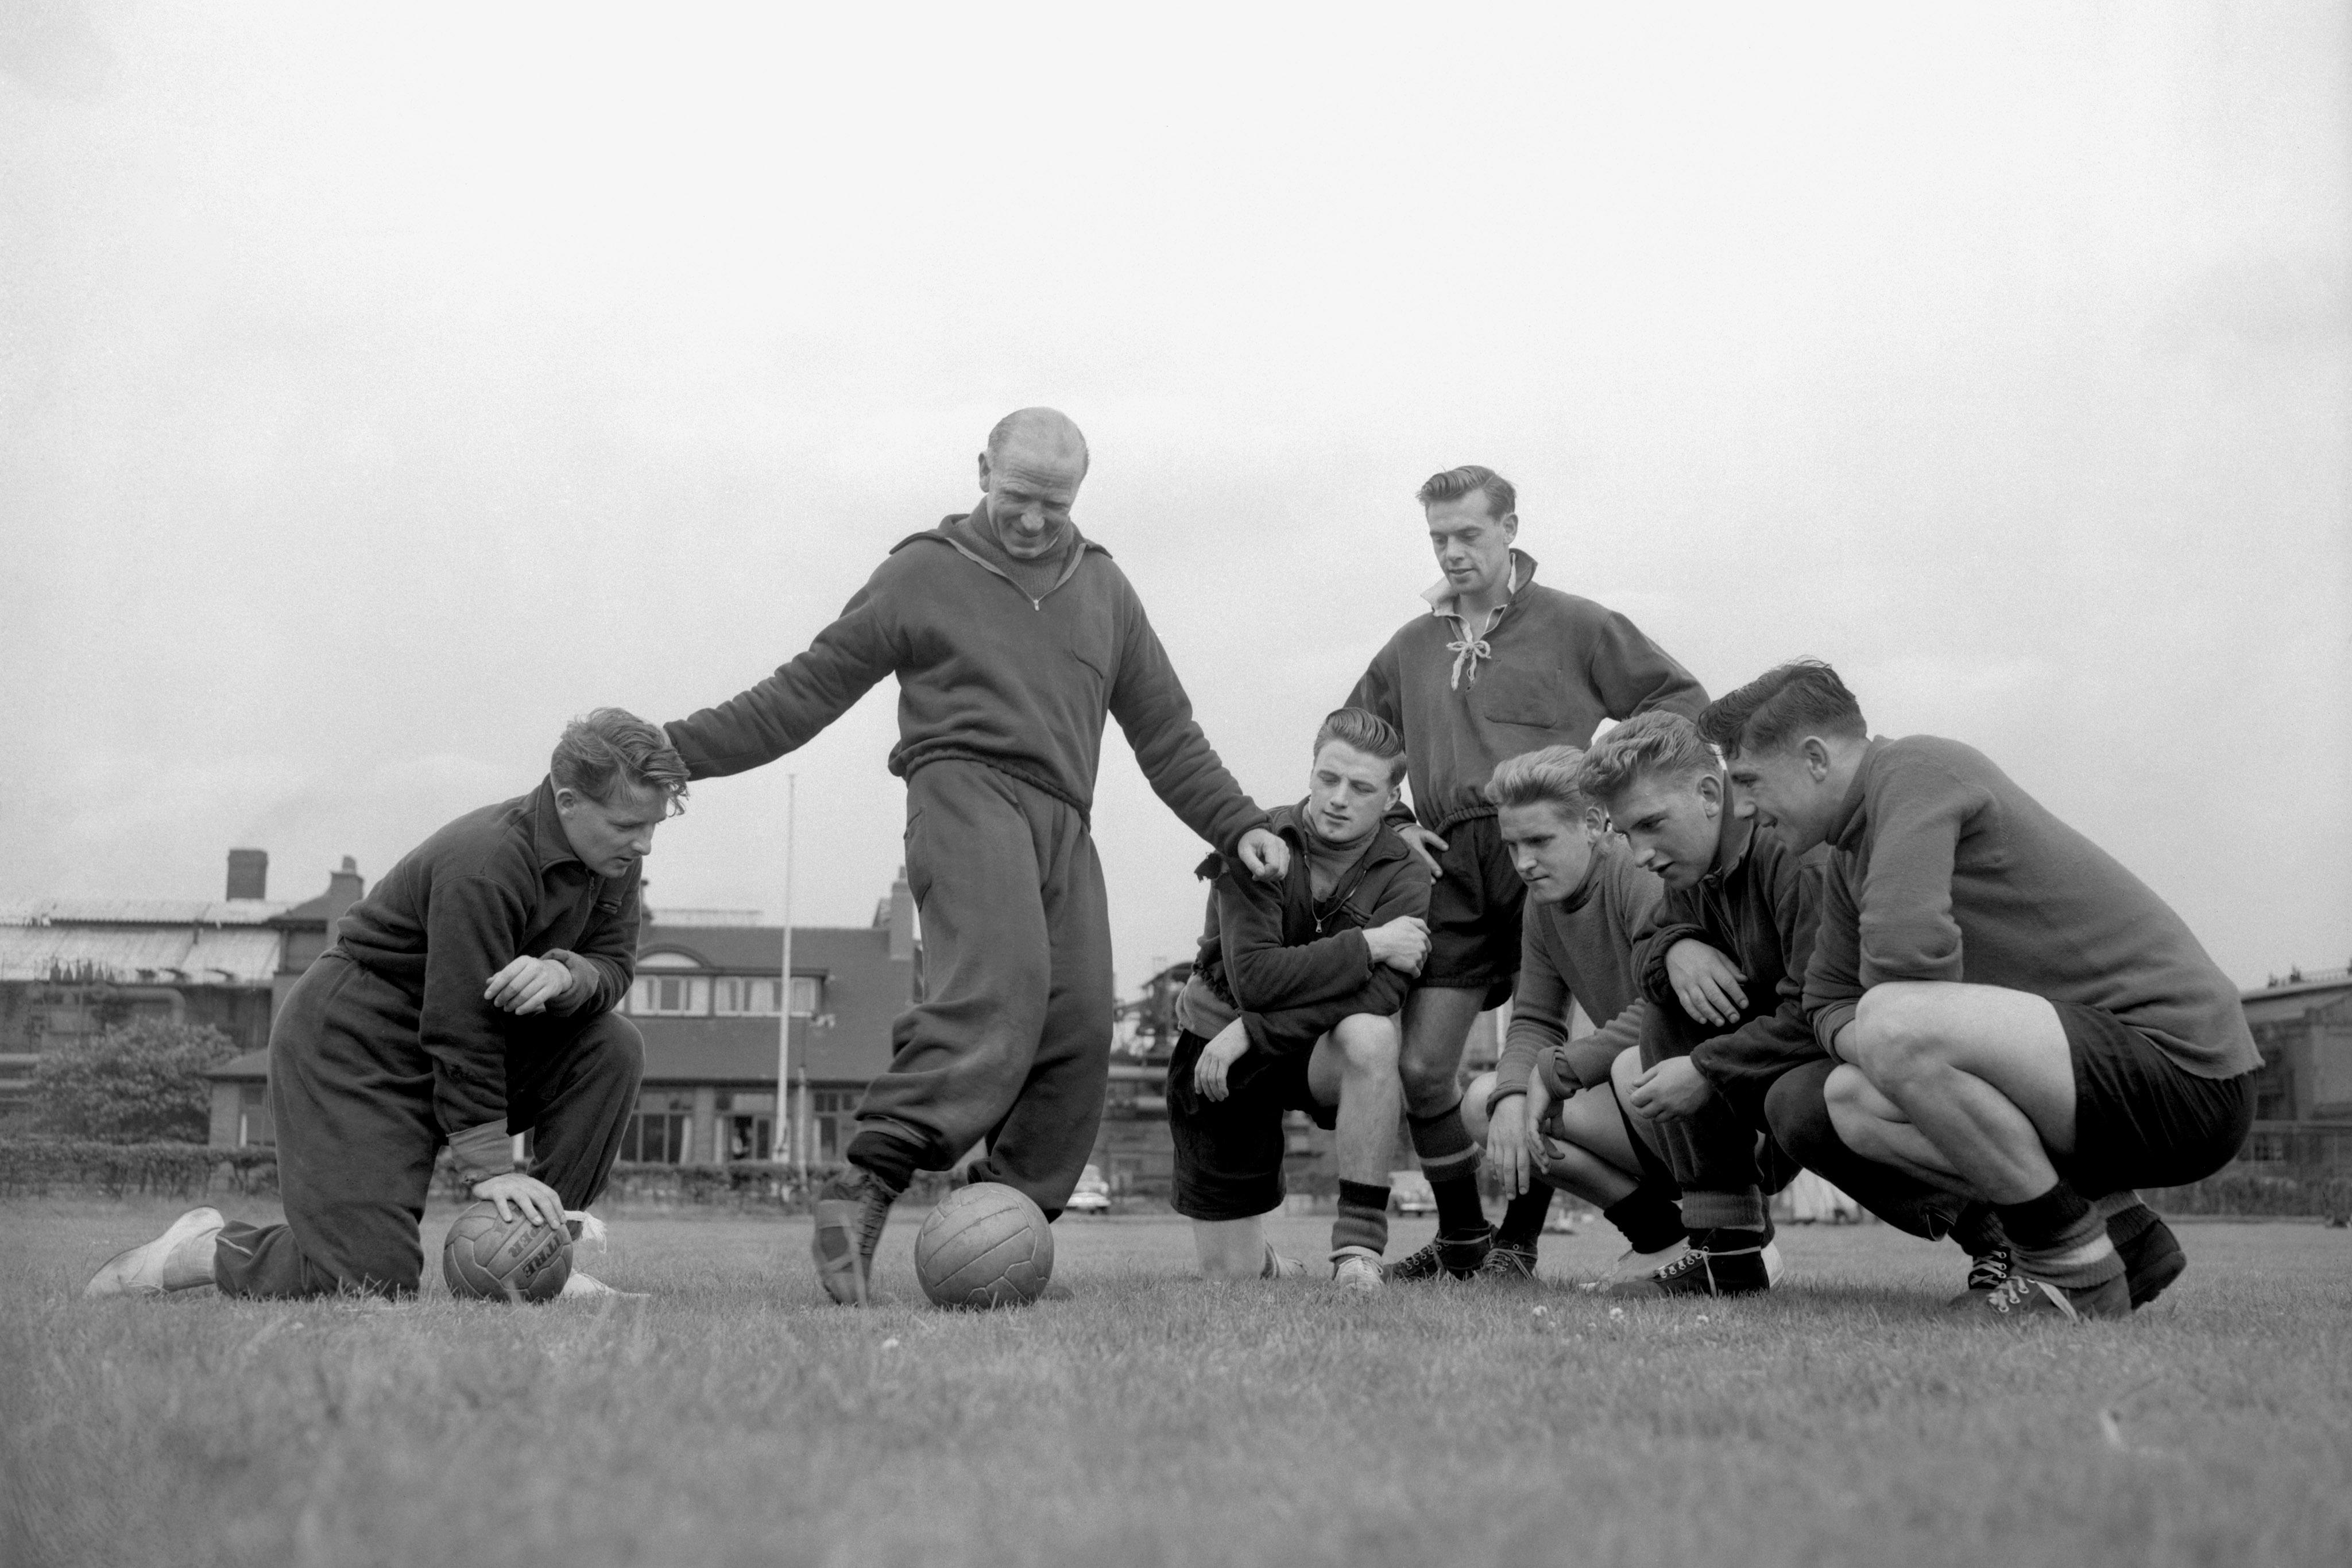 Sir Matt Busby's fantastic young team had threatened to become one of the best teams in Europe